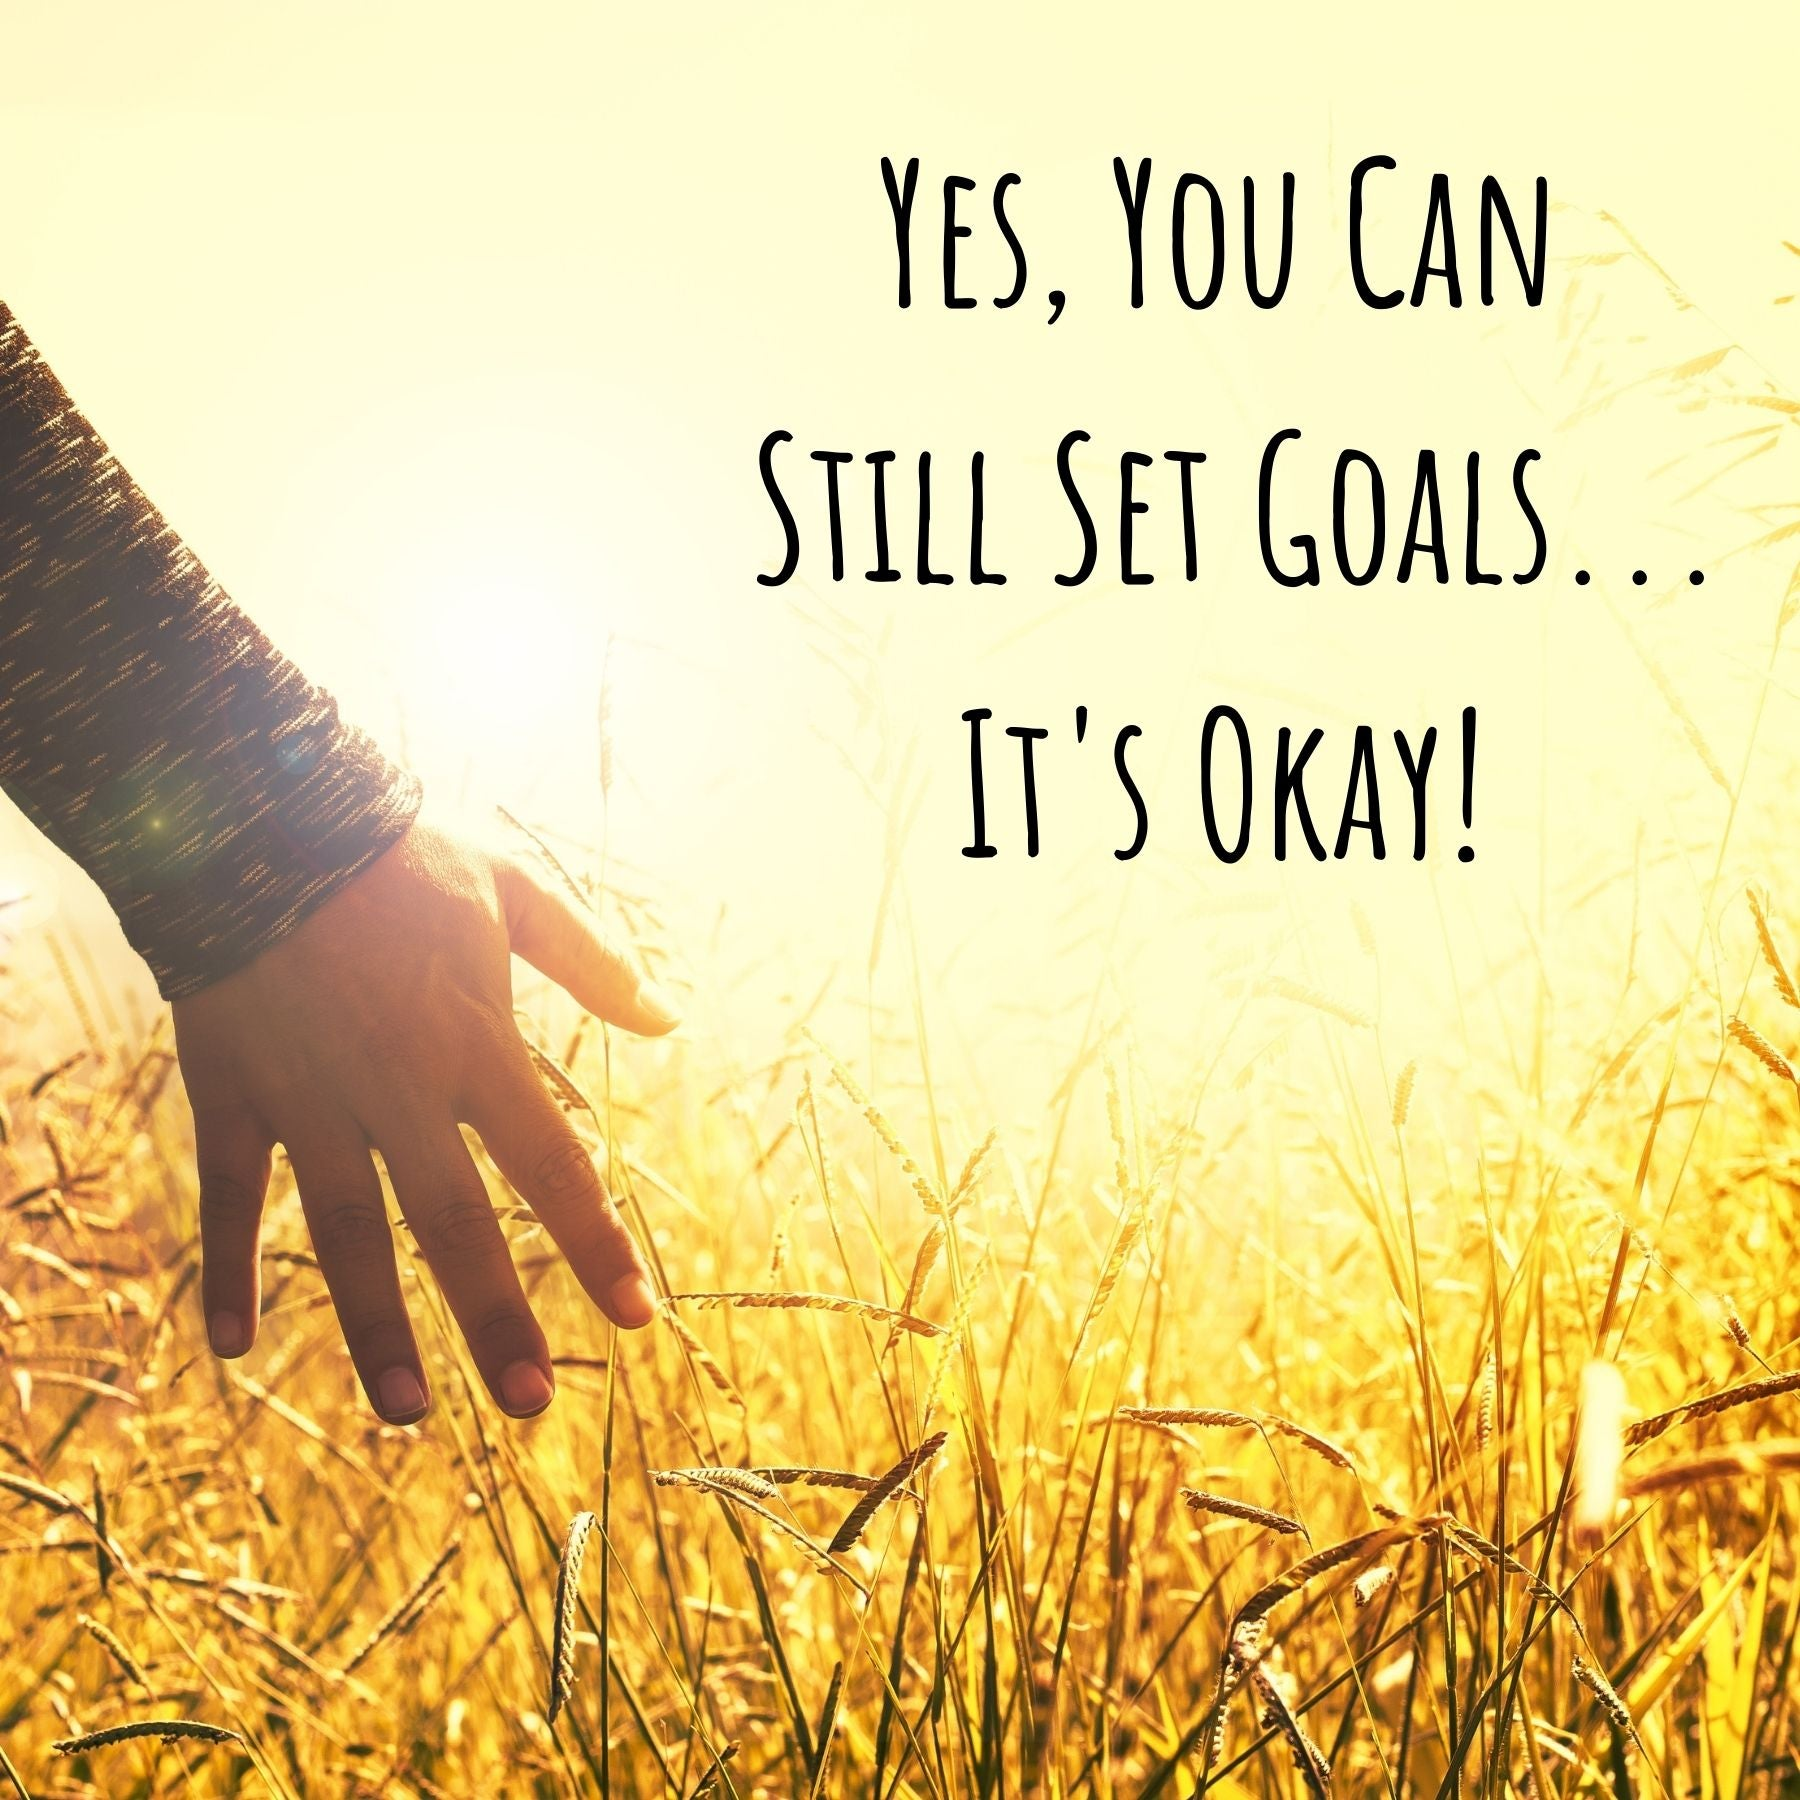 Yes, You Can Still Set Goals...It's Okay!